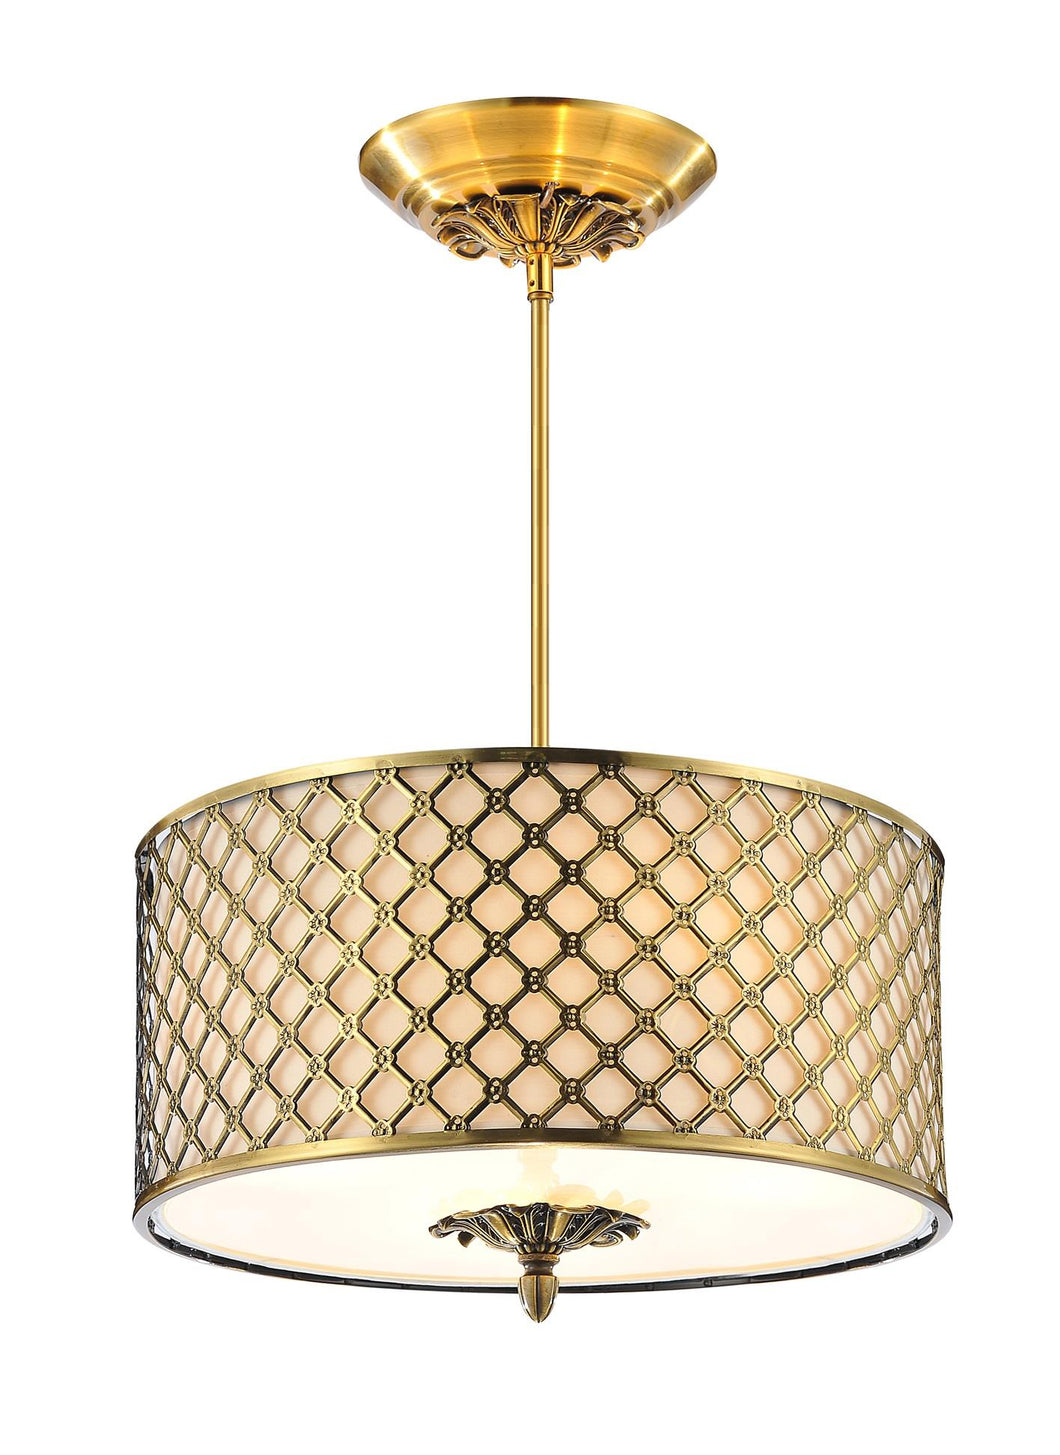 3 Light Drum Shade Chandelier with French Gold finish